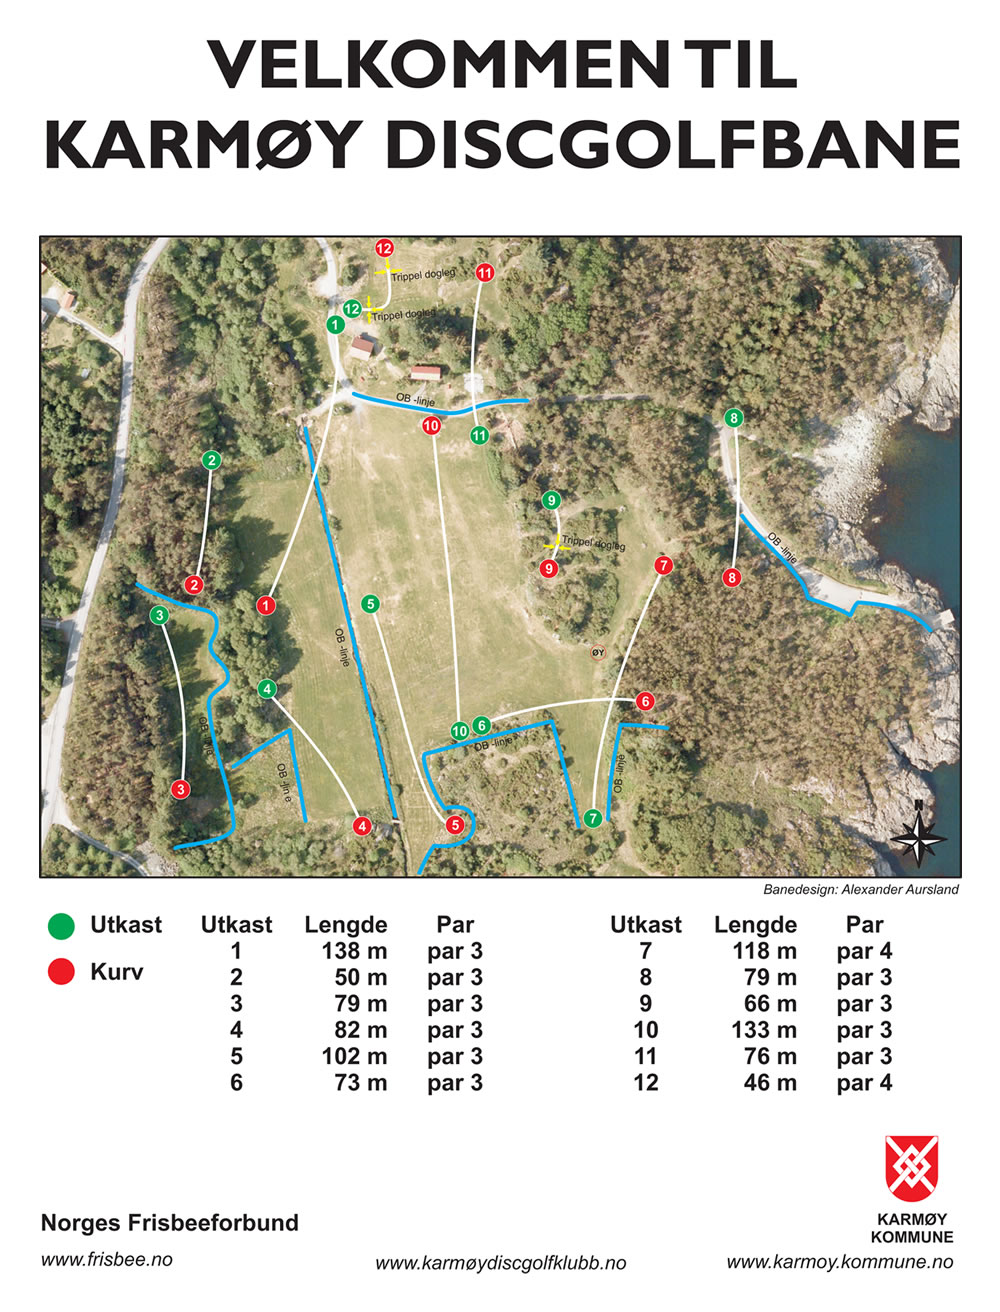 Karmøy Discgolfbane Professional Disc Golf Association - Karmoy norway map